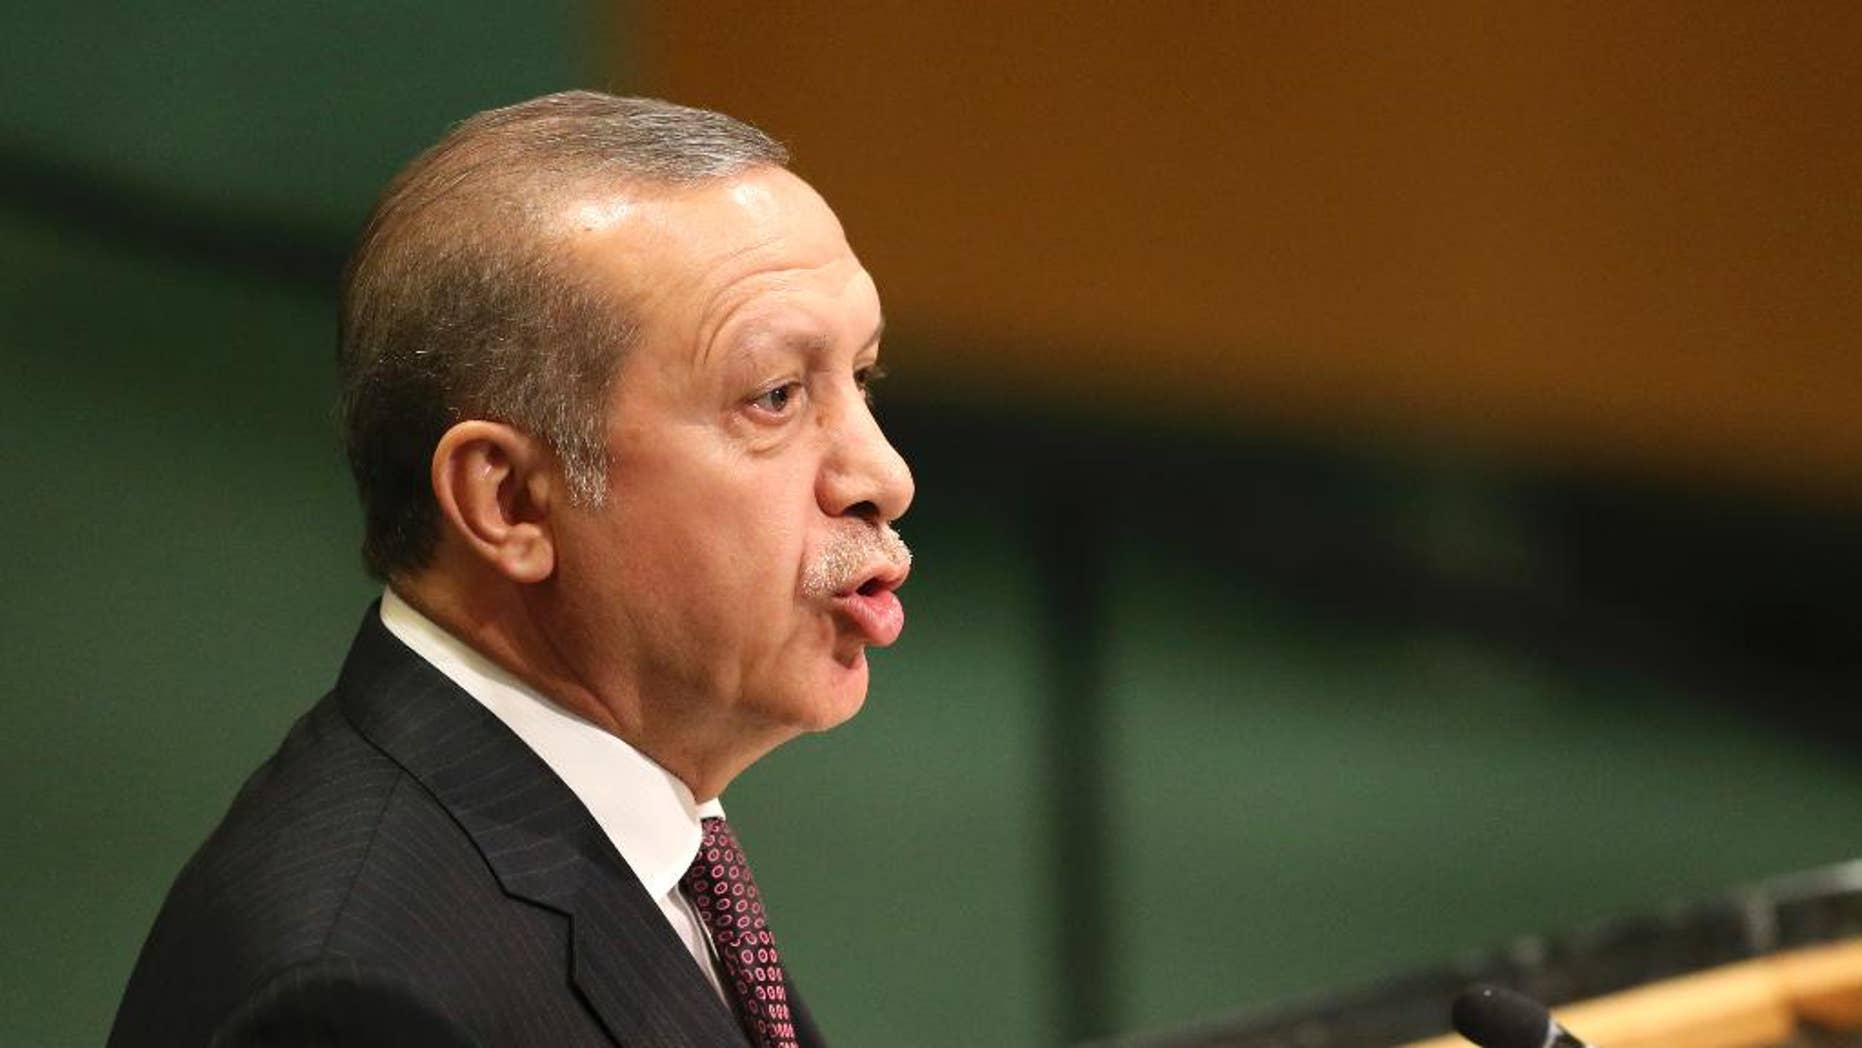 Recep Tayyip Erdogan, President of Turkey, speaks during the 71st session of the United Nations General Assembly at U.N. headquarters, Tuesday, Sept. 20, 2016. (AP Photo/Seth Wenig)